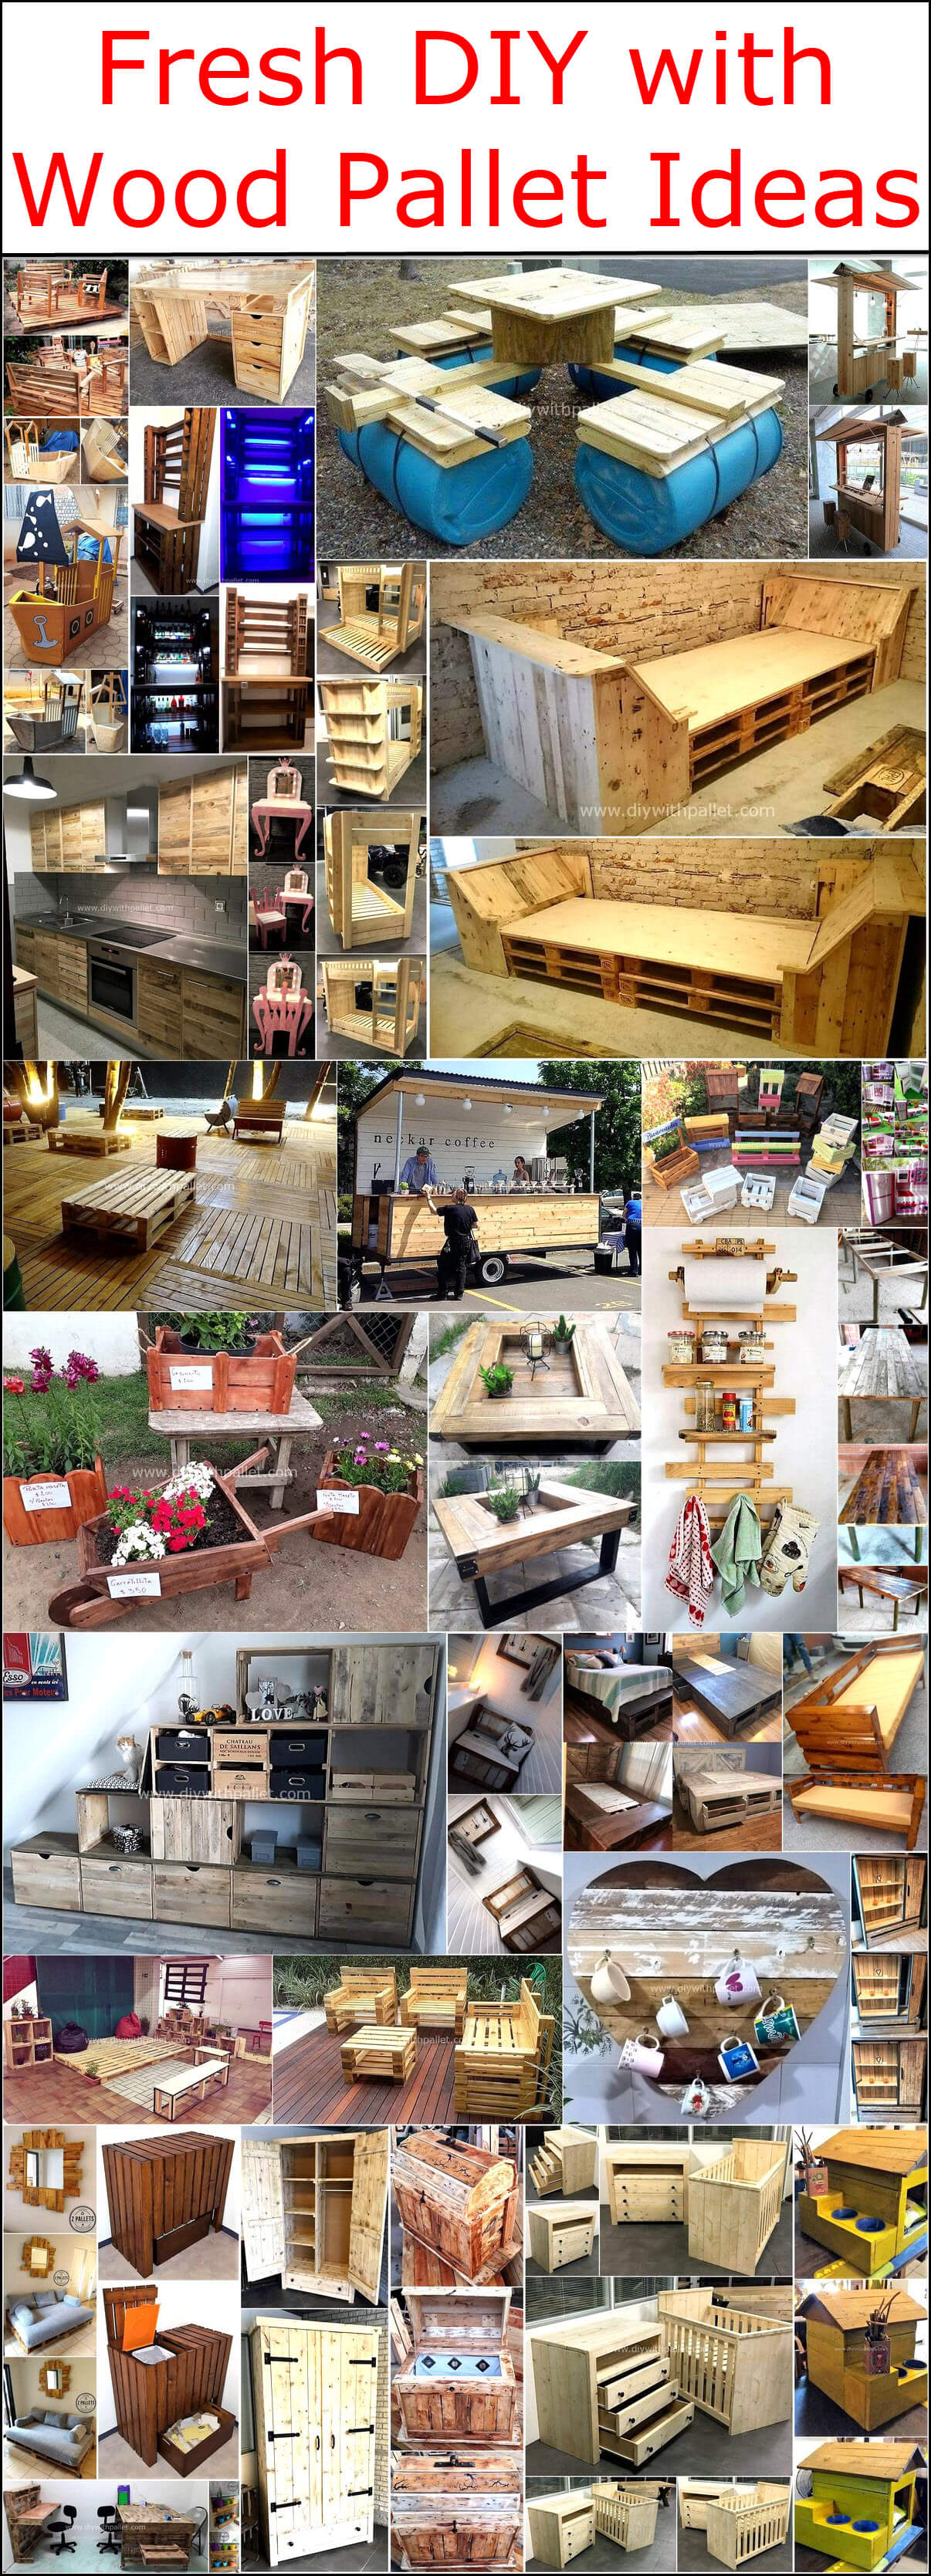 Fresh DIY with Wood Pallet Ideas | DIY with Pallets: ideas for Wood Pallet Furniture Plans and Projects.